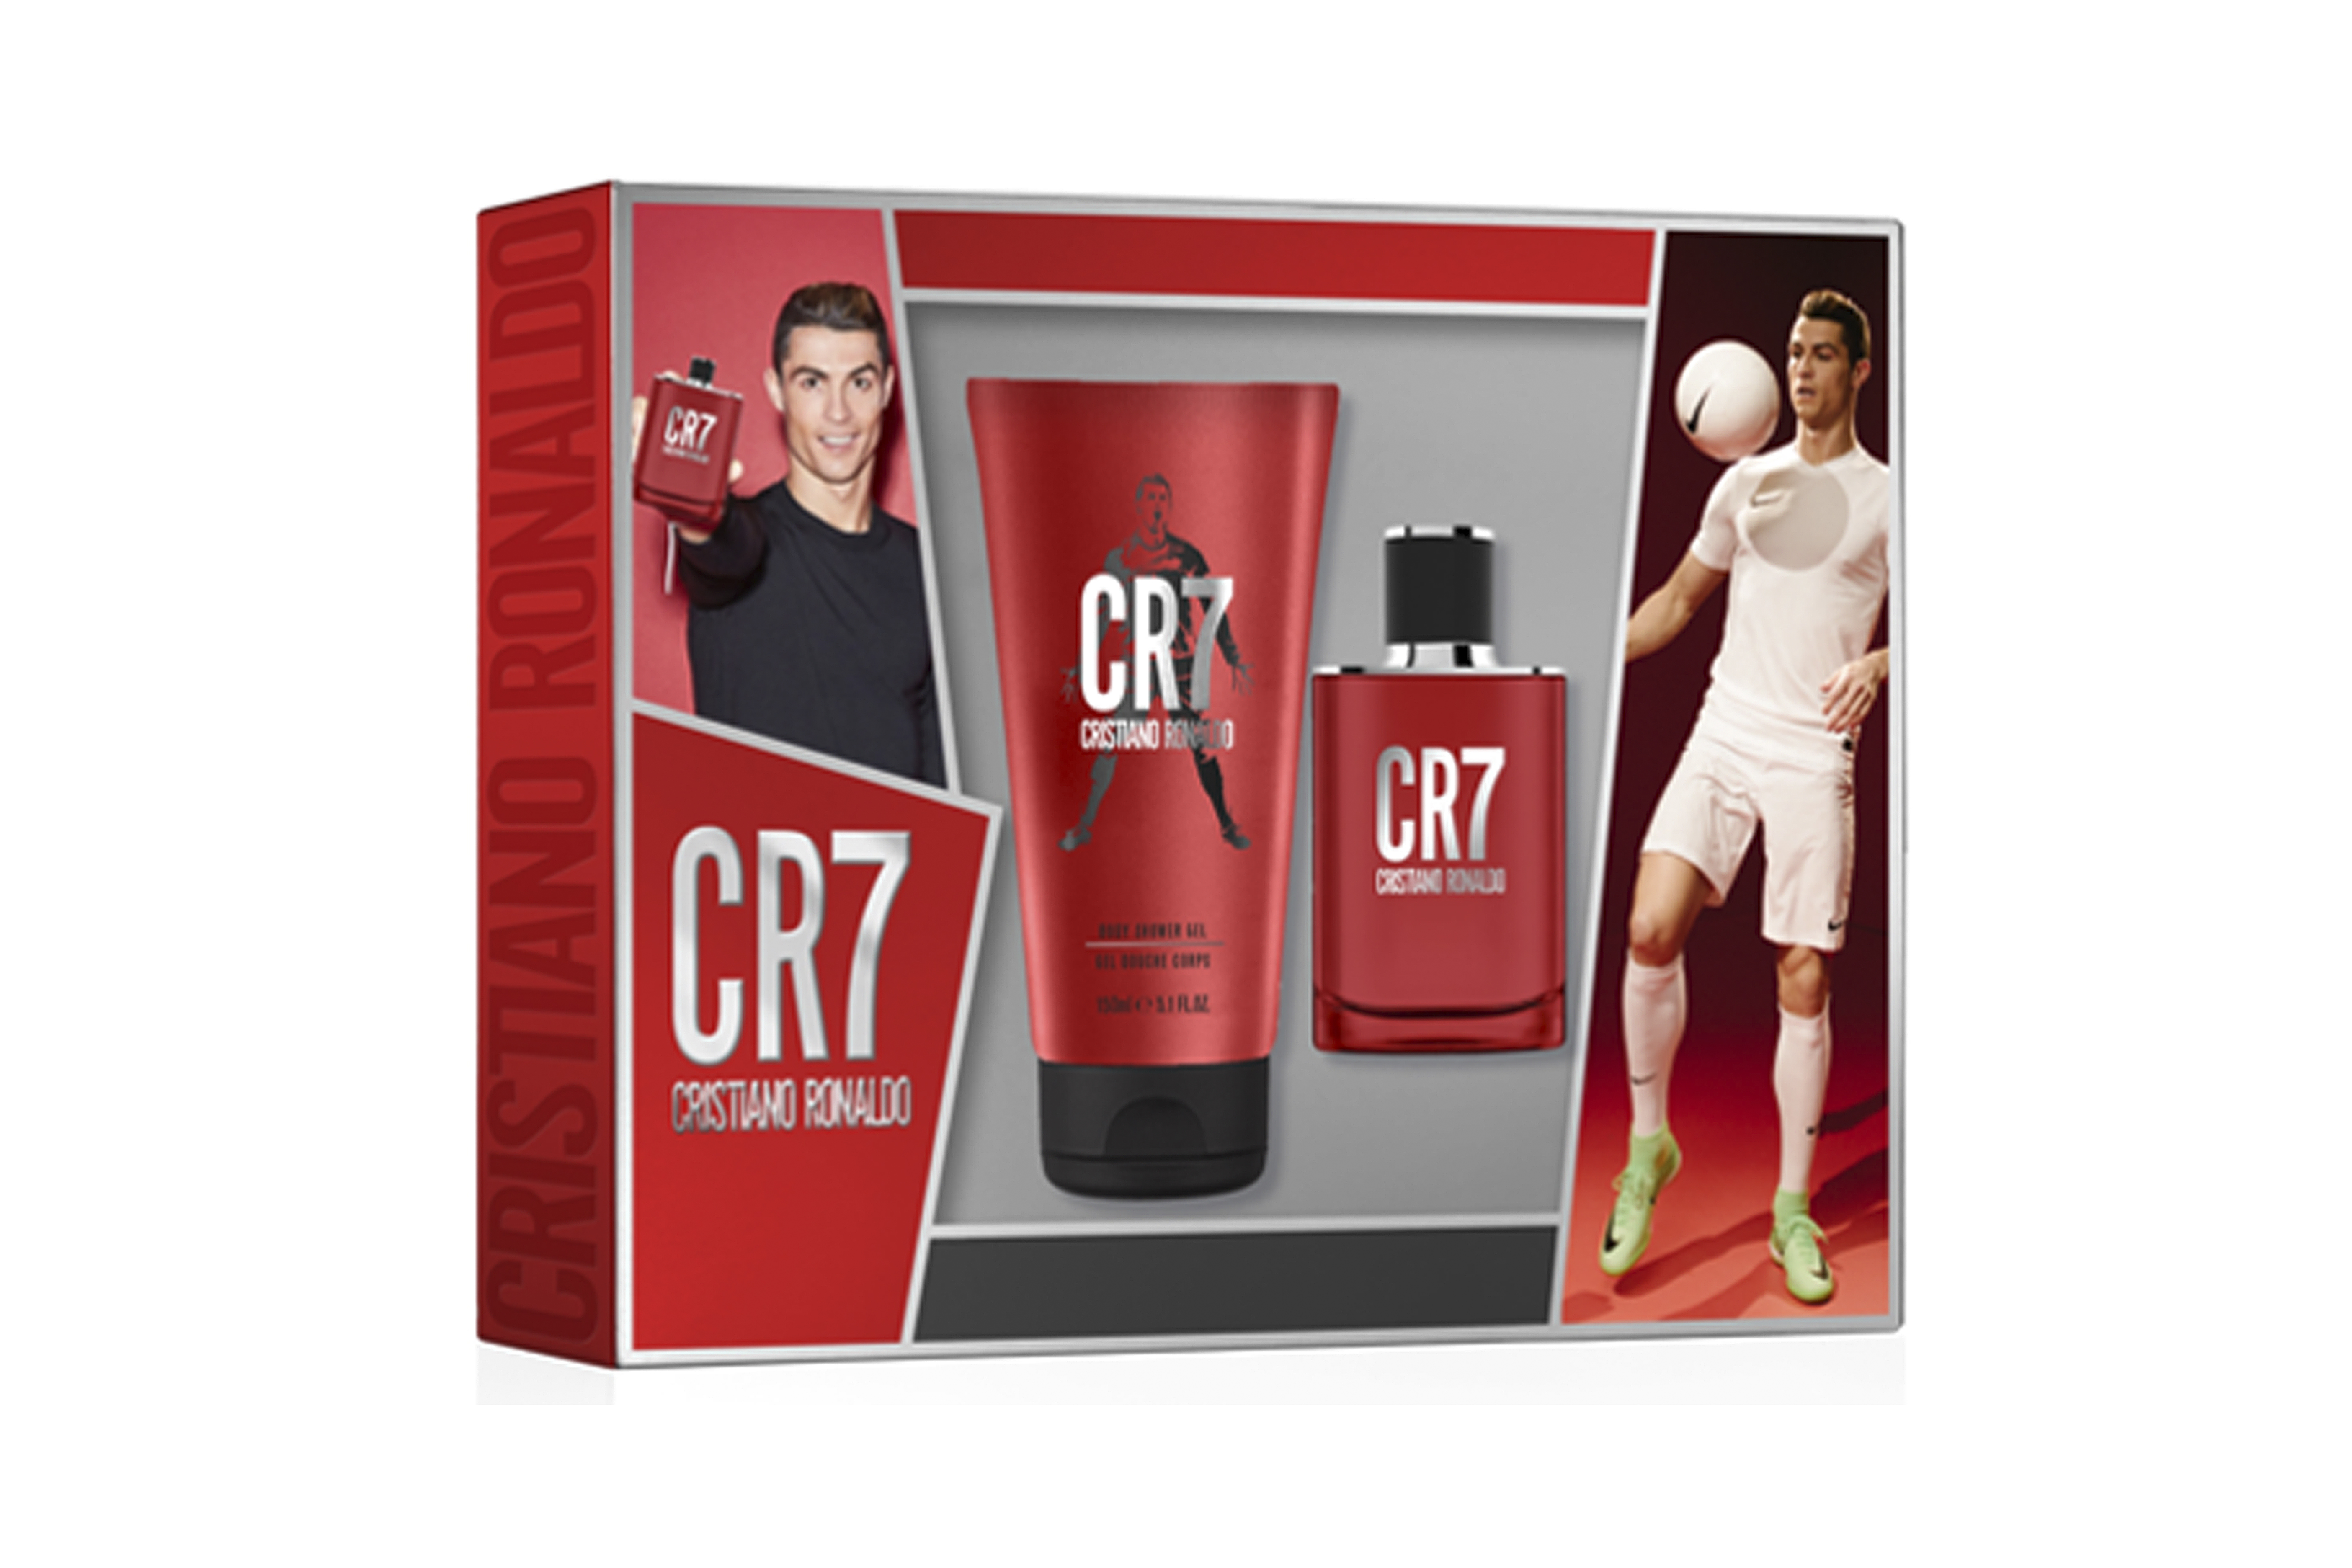 CR7 Giftbox